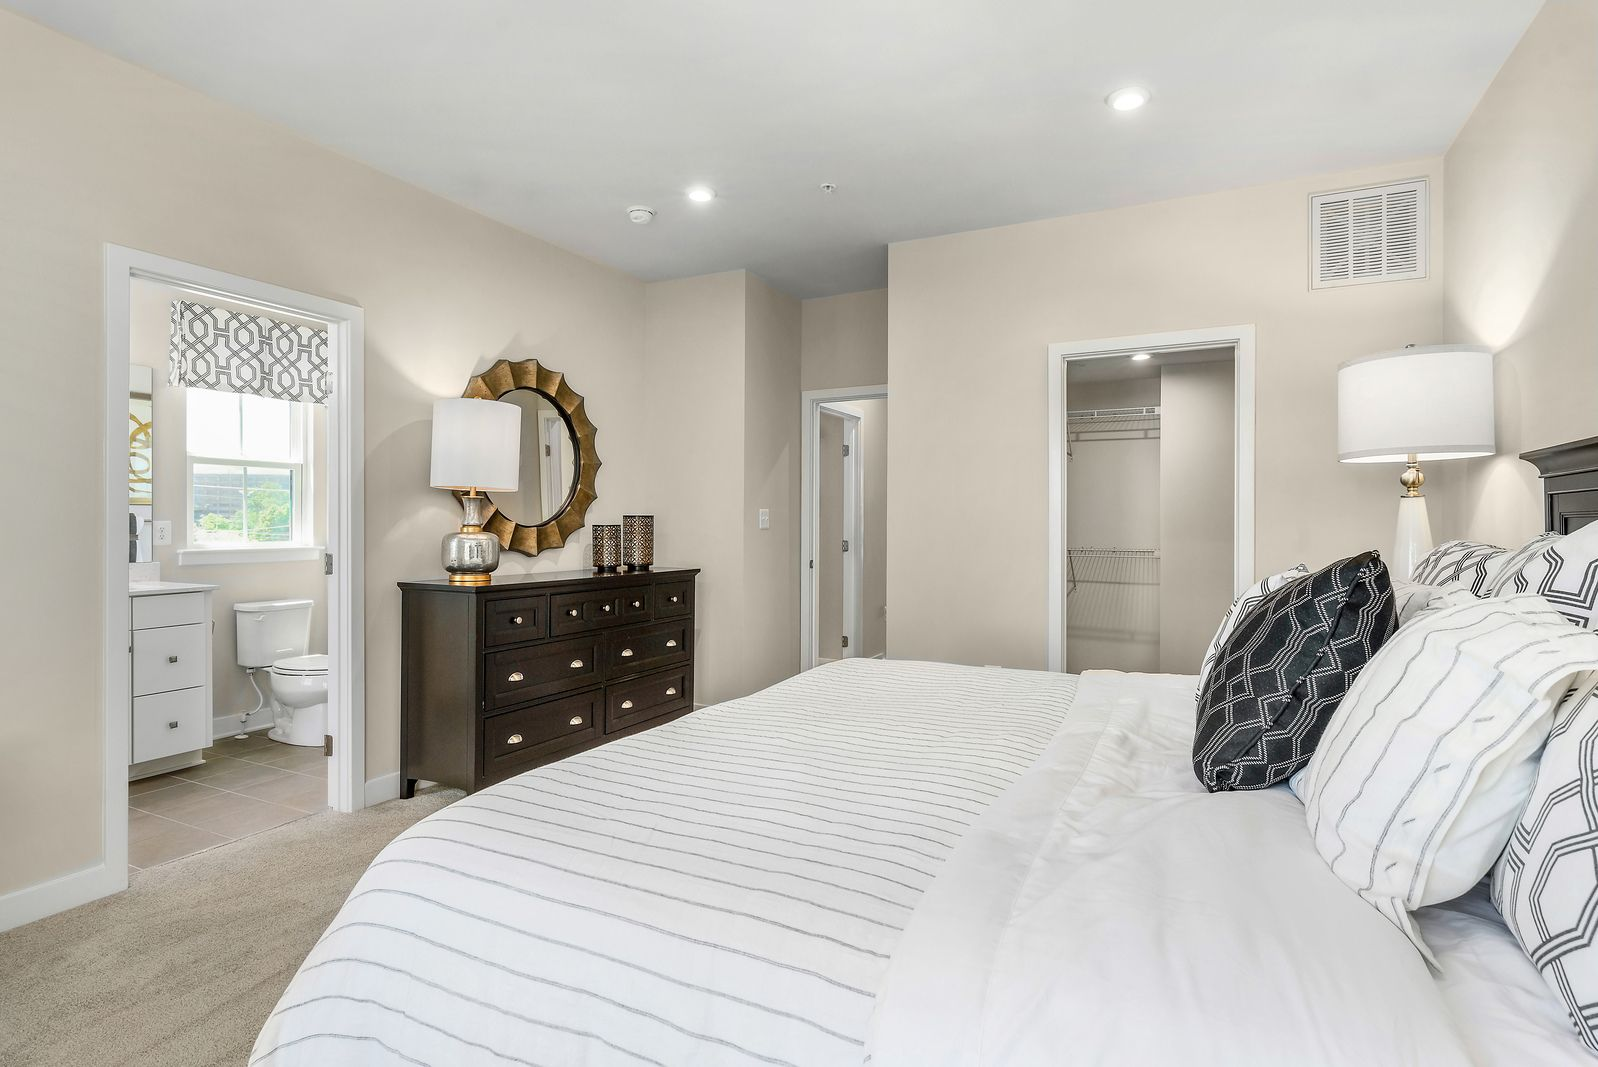 Bedroom featured in the Strauss Urban 3 Story By Ryan Homes in Baltimore, MD